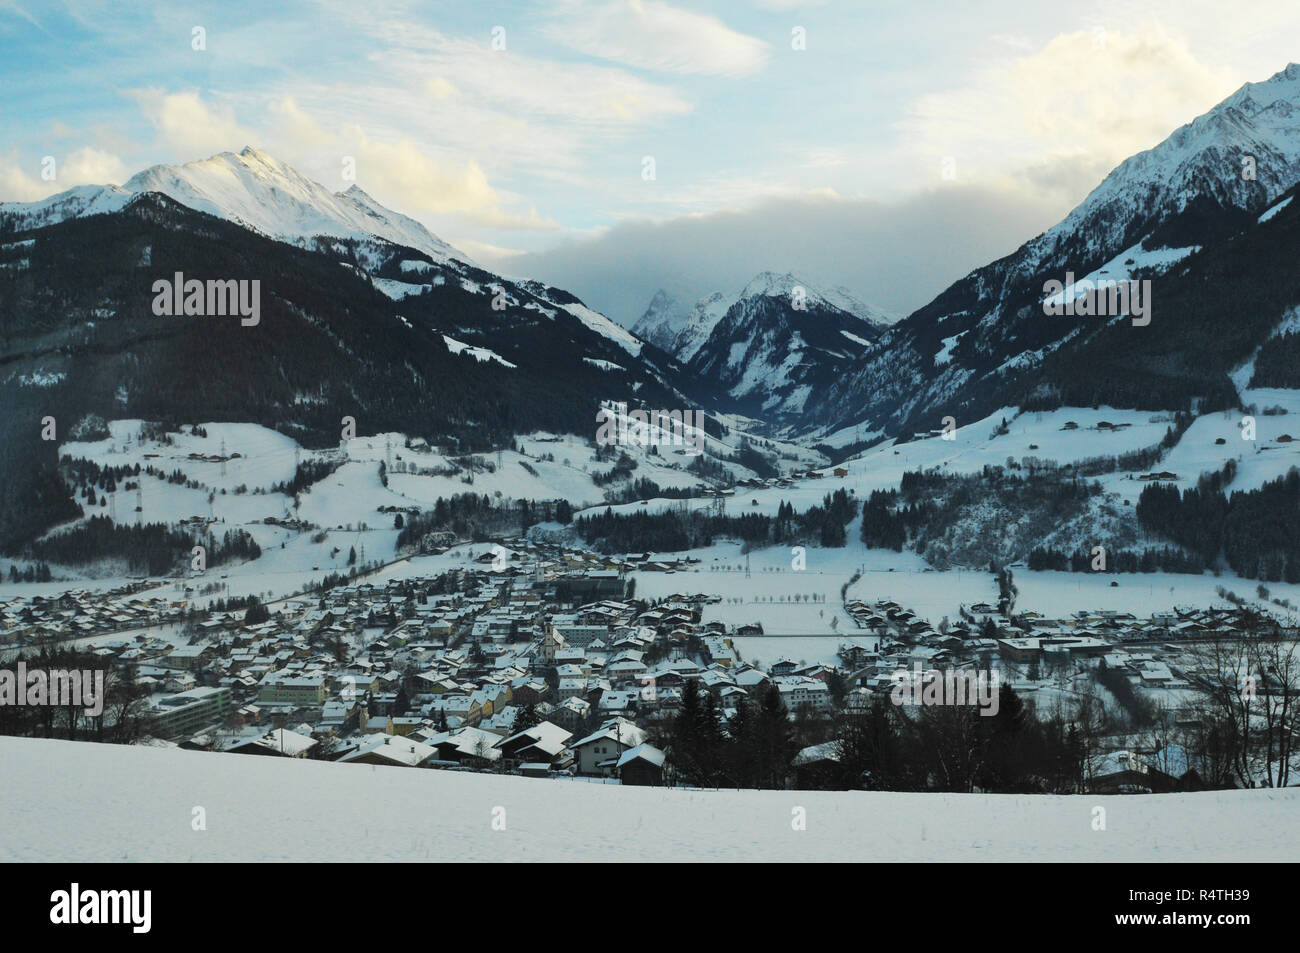 Austria: Winter sport at the 'Hohe Tauern' in the alps of East Tirol - Stock Image